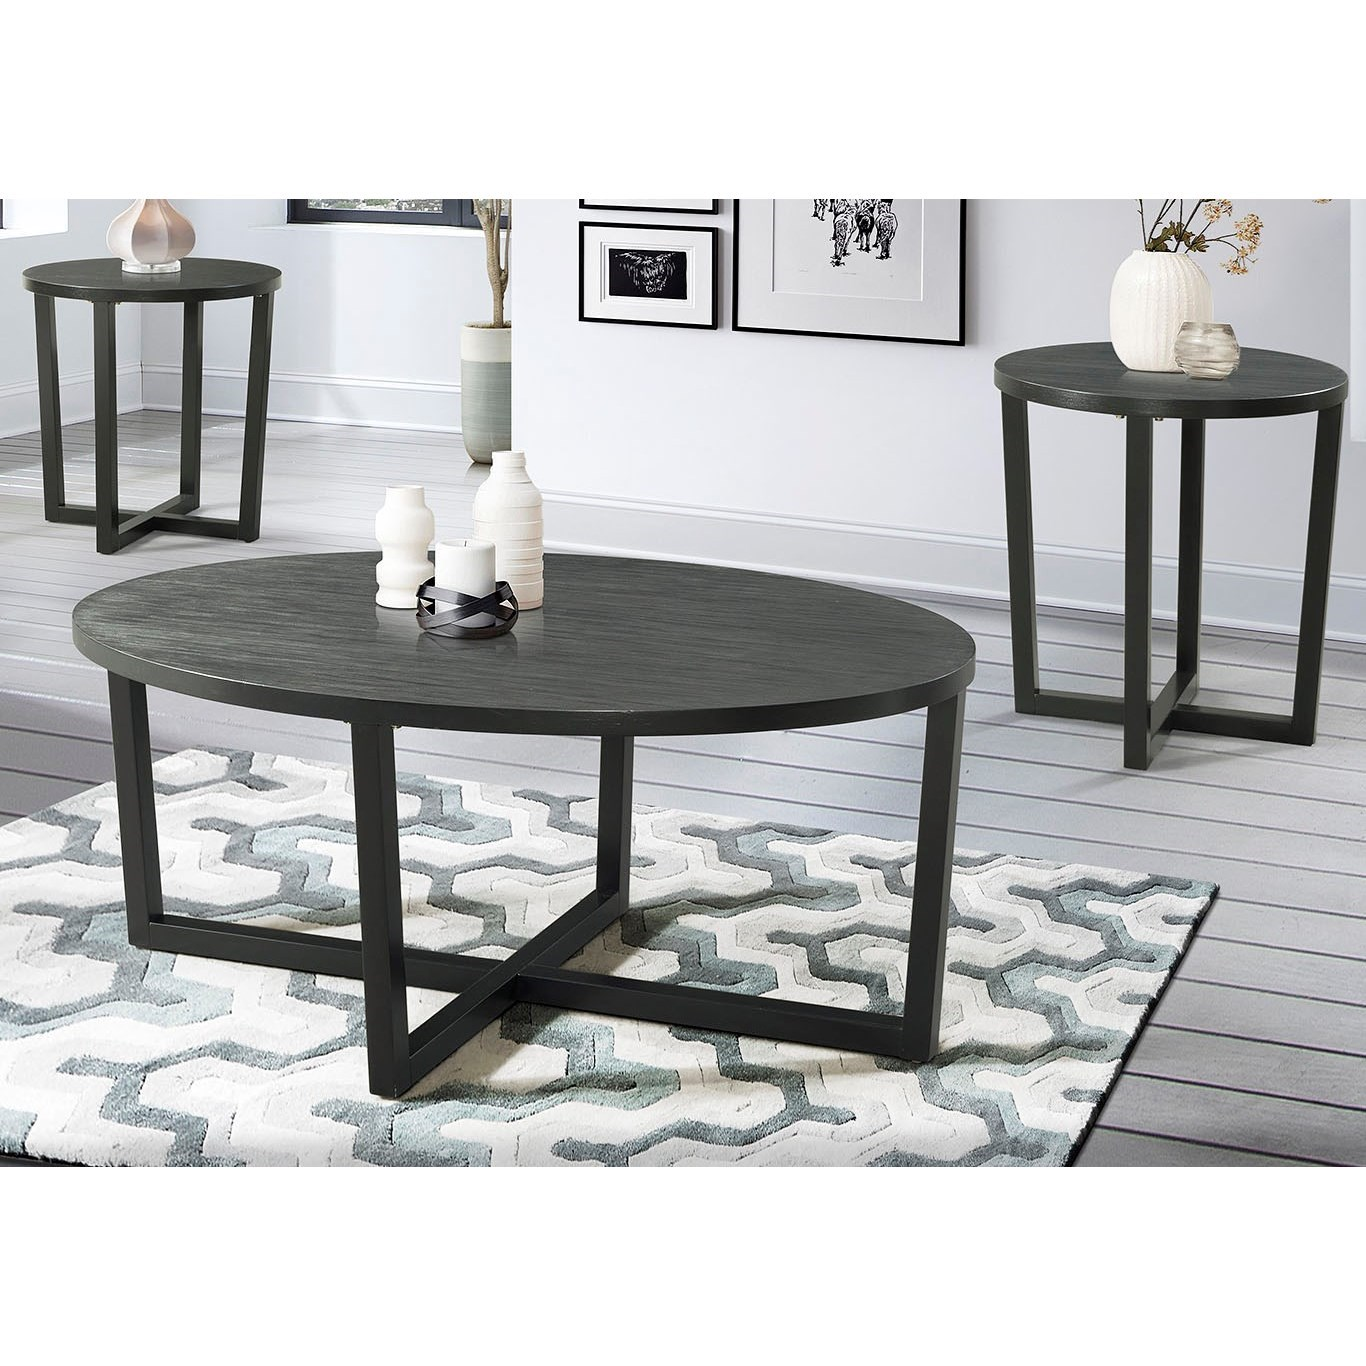 7585 3-Piece Occasional Table Set by Lane at Esprit Decor Home Furnishings